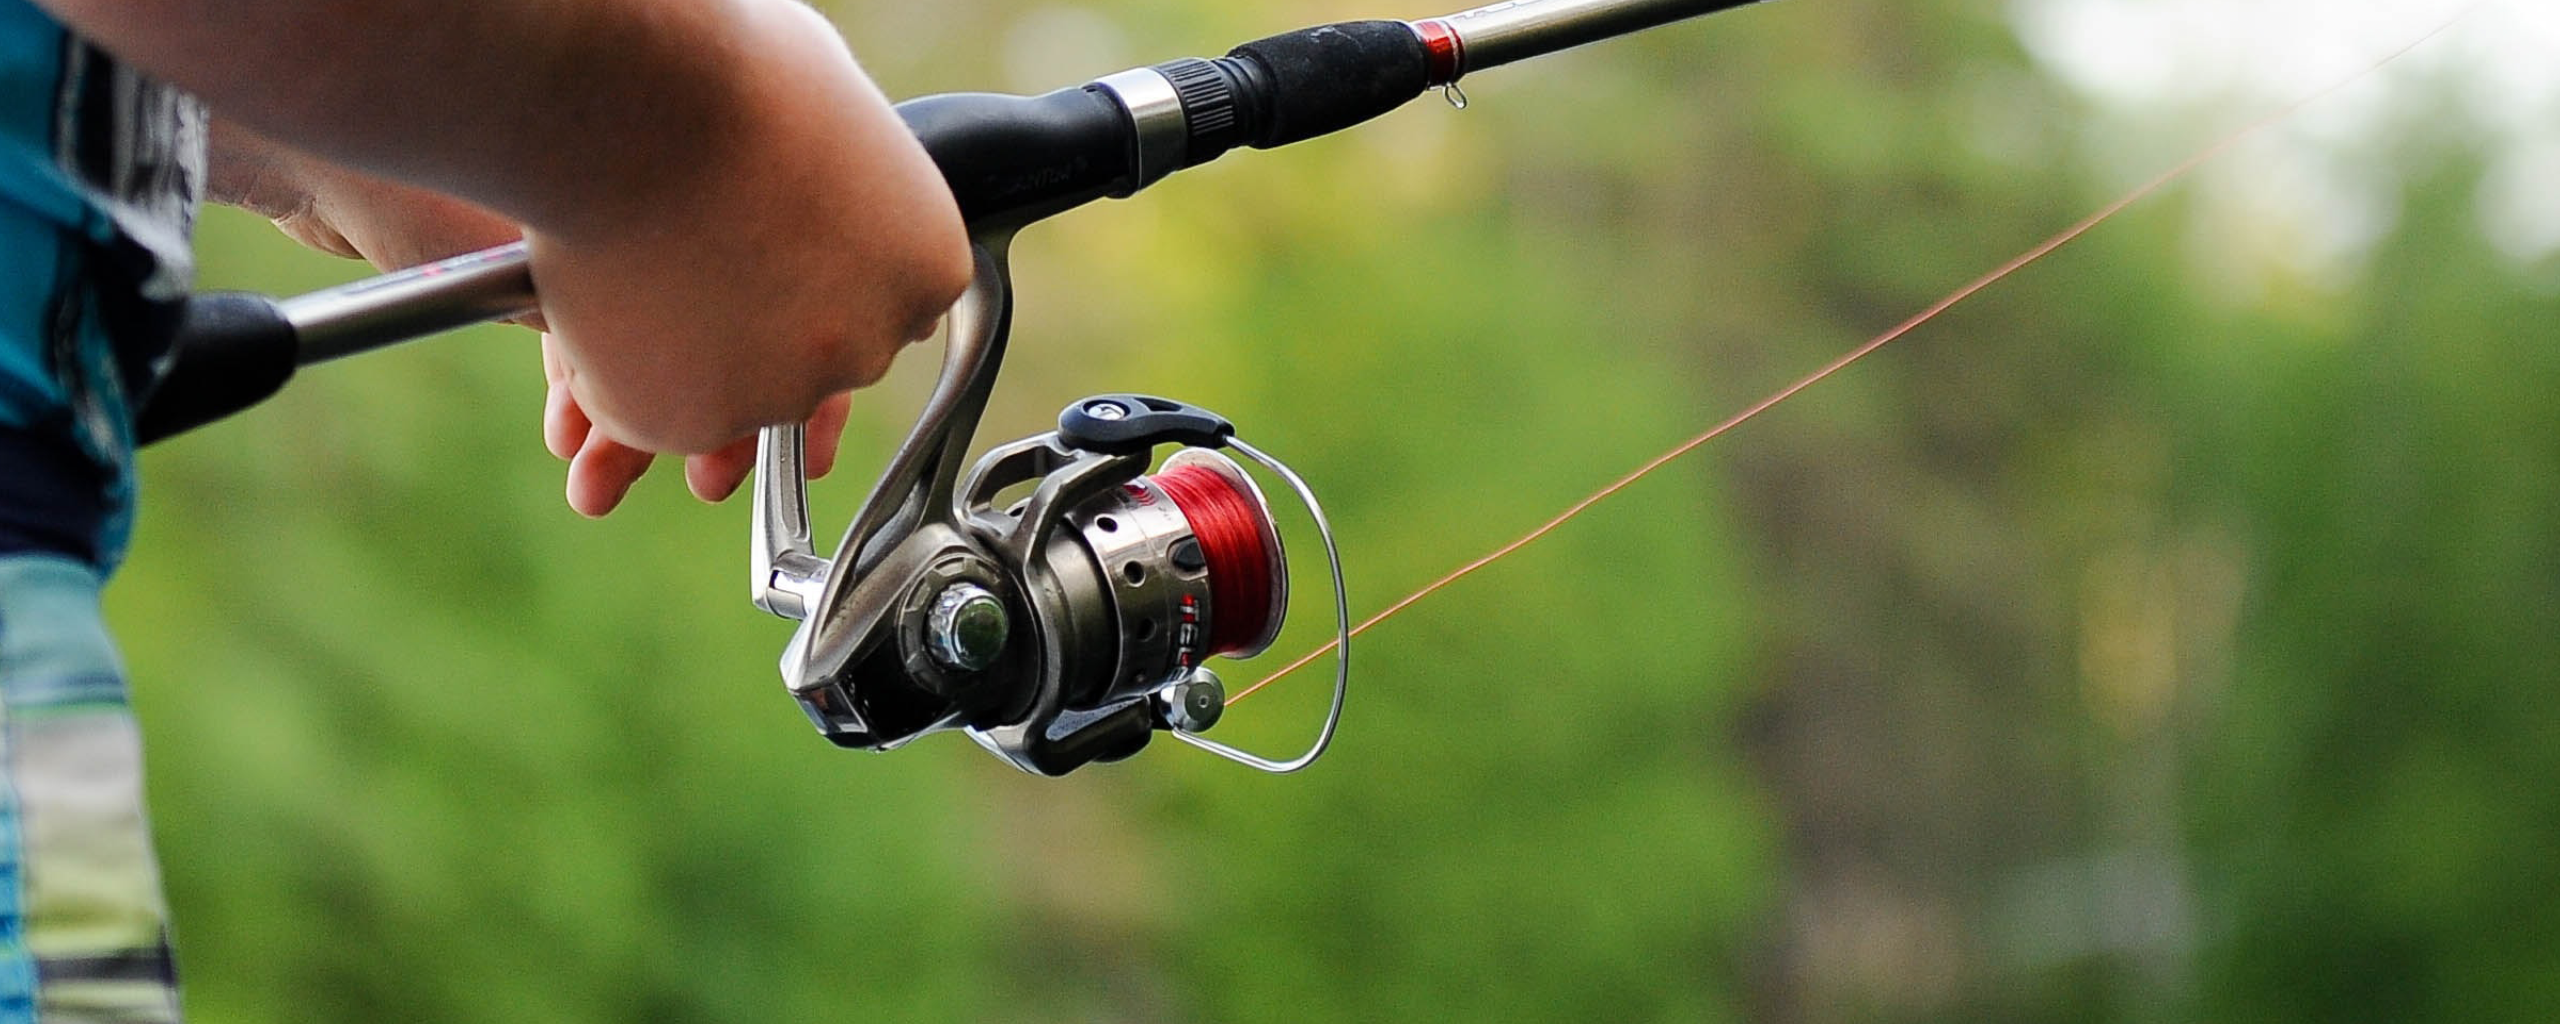 Best Baitcasting Reels Review TheOceanScan.com